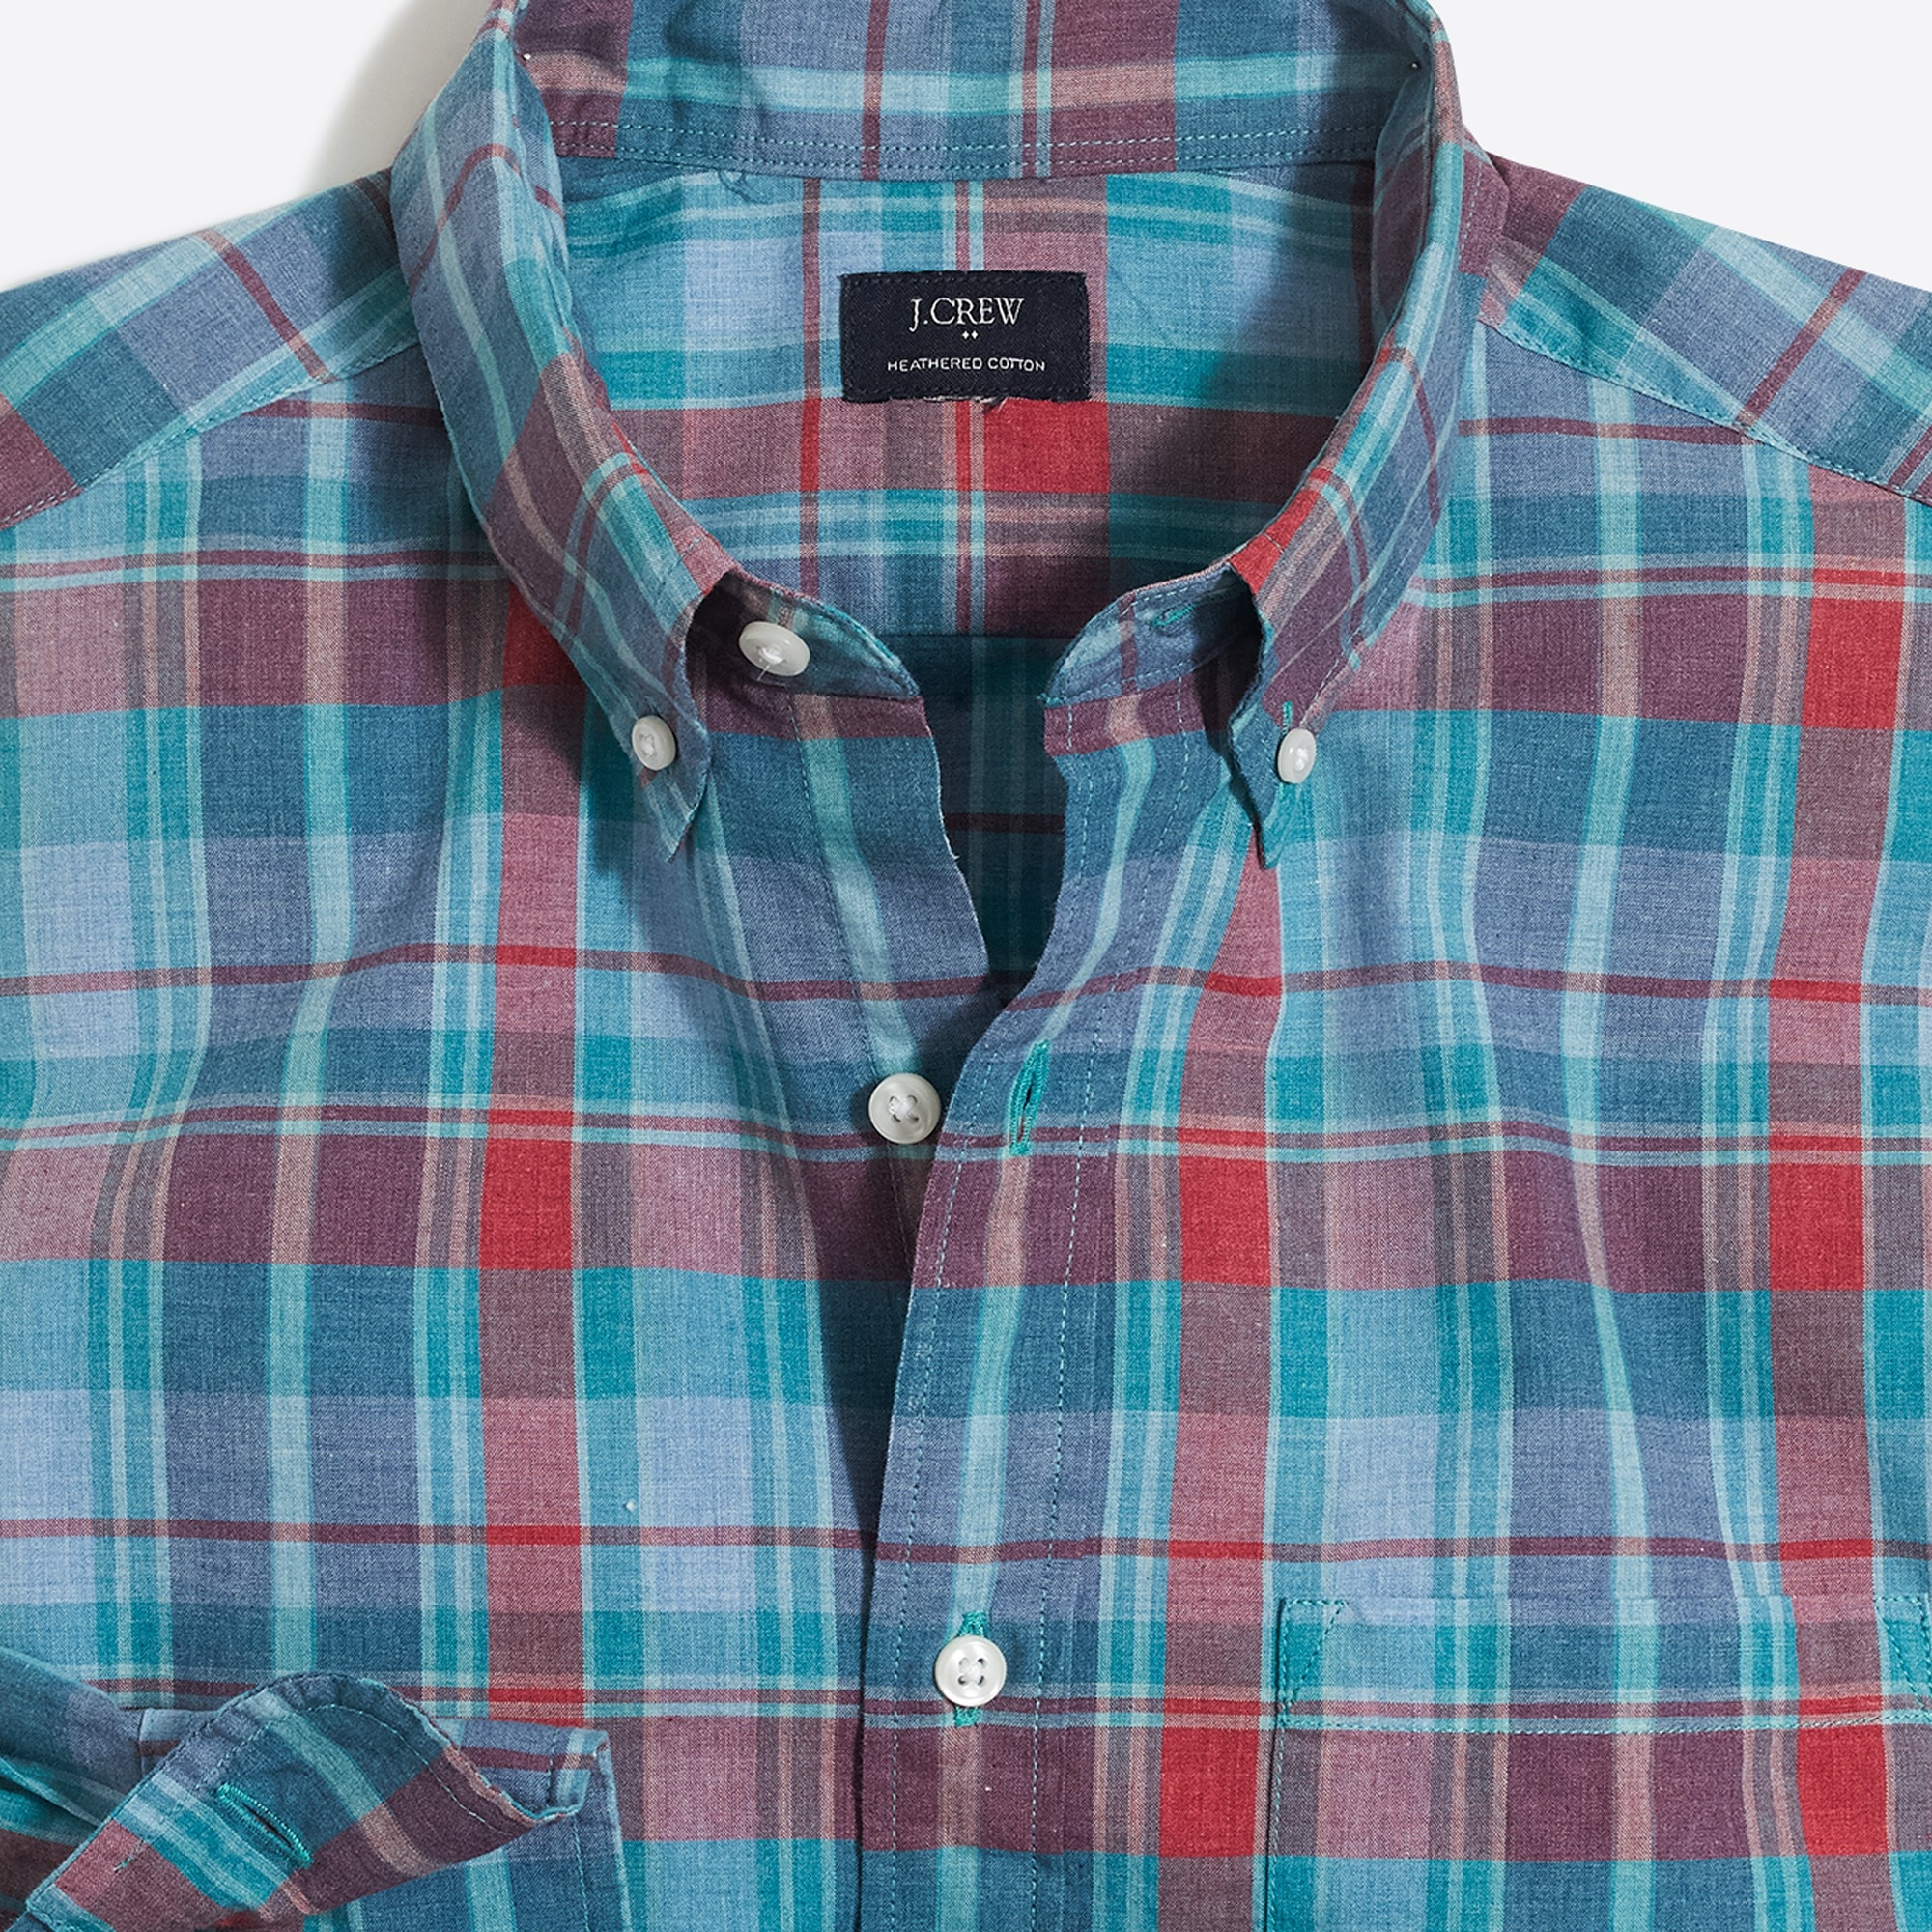 Image 2 for Heathered cotton plaid shirt